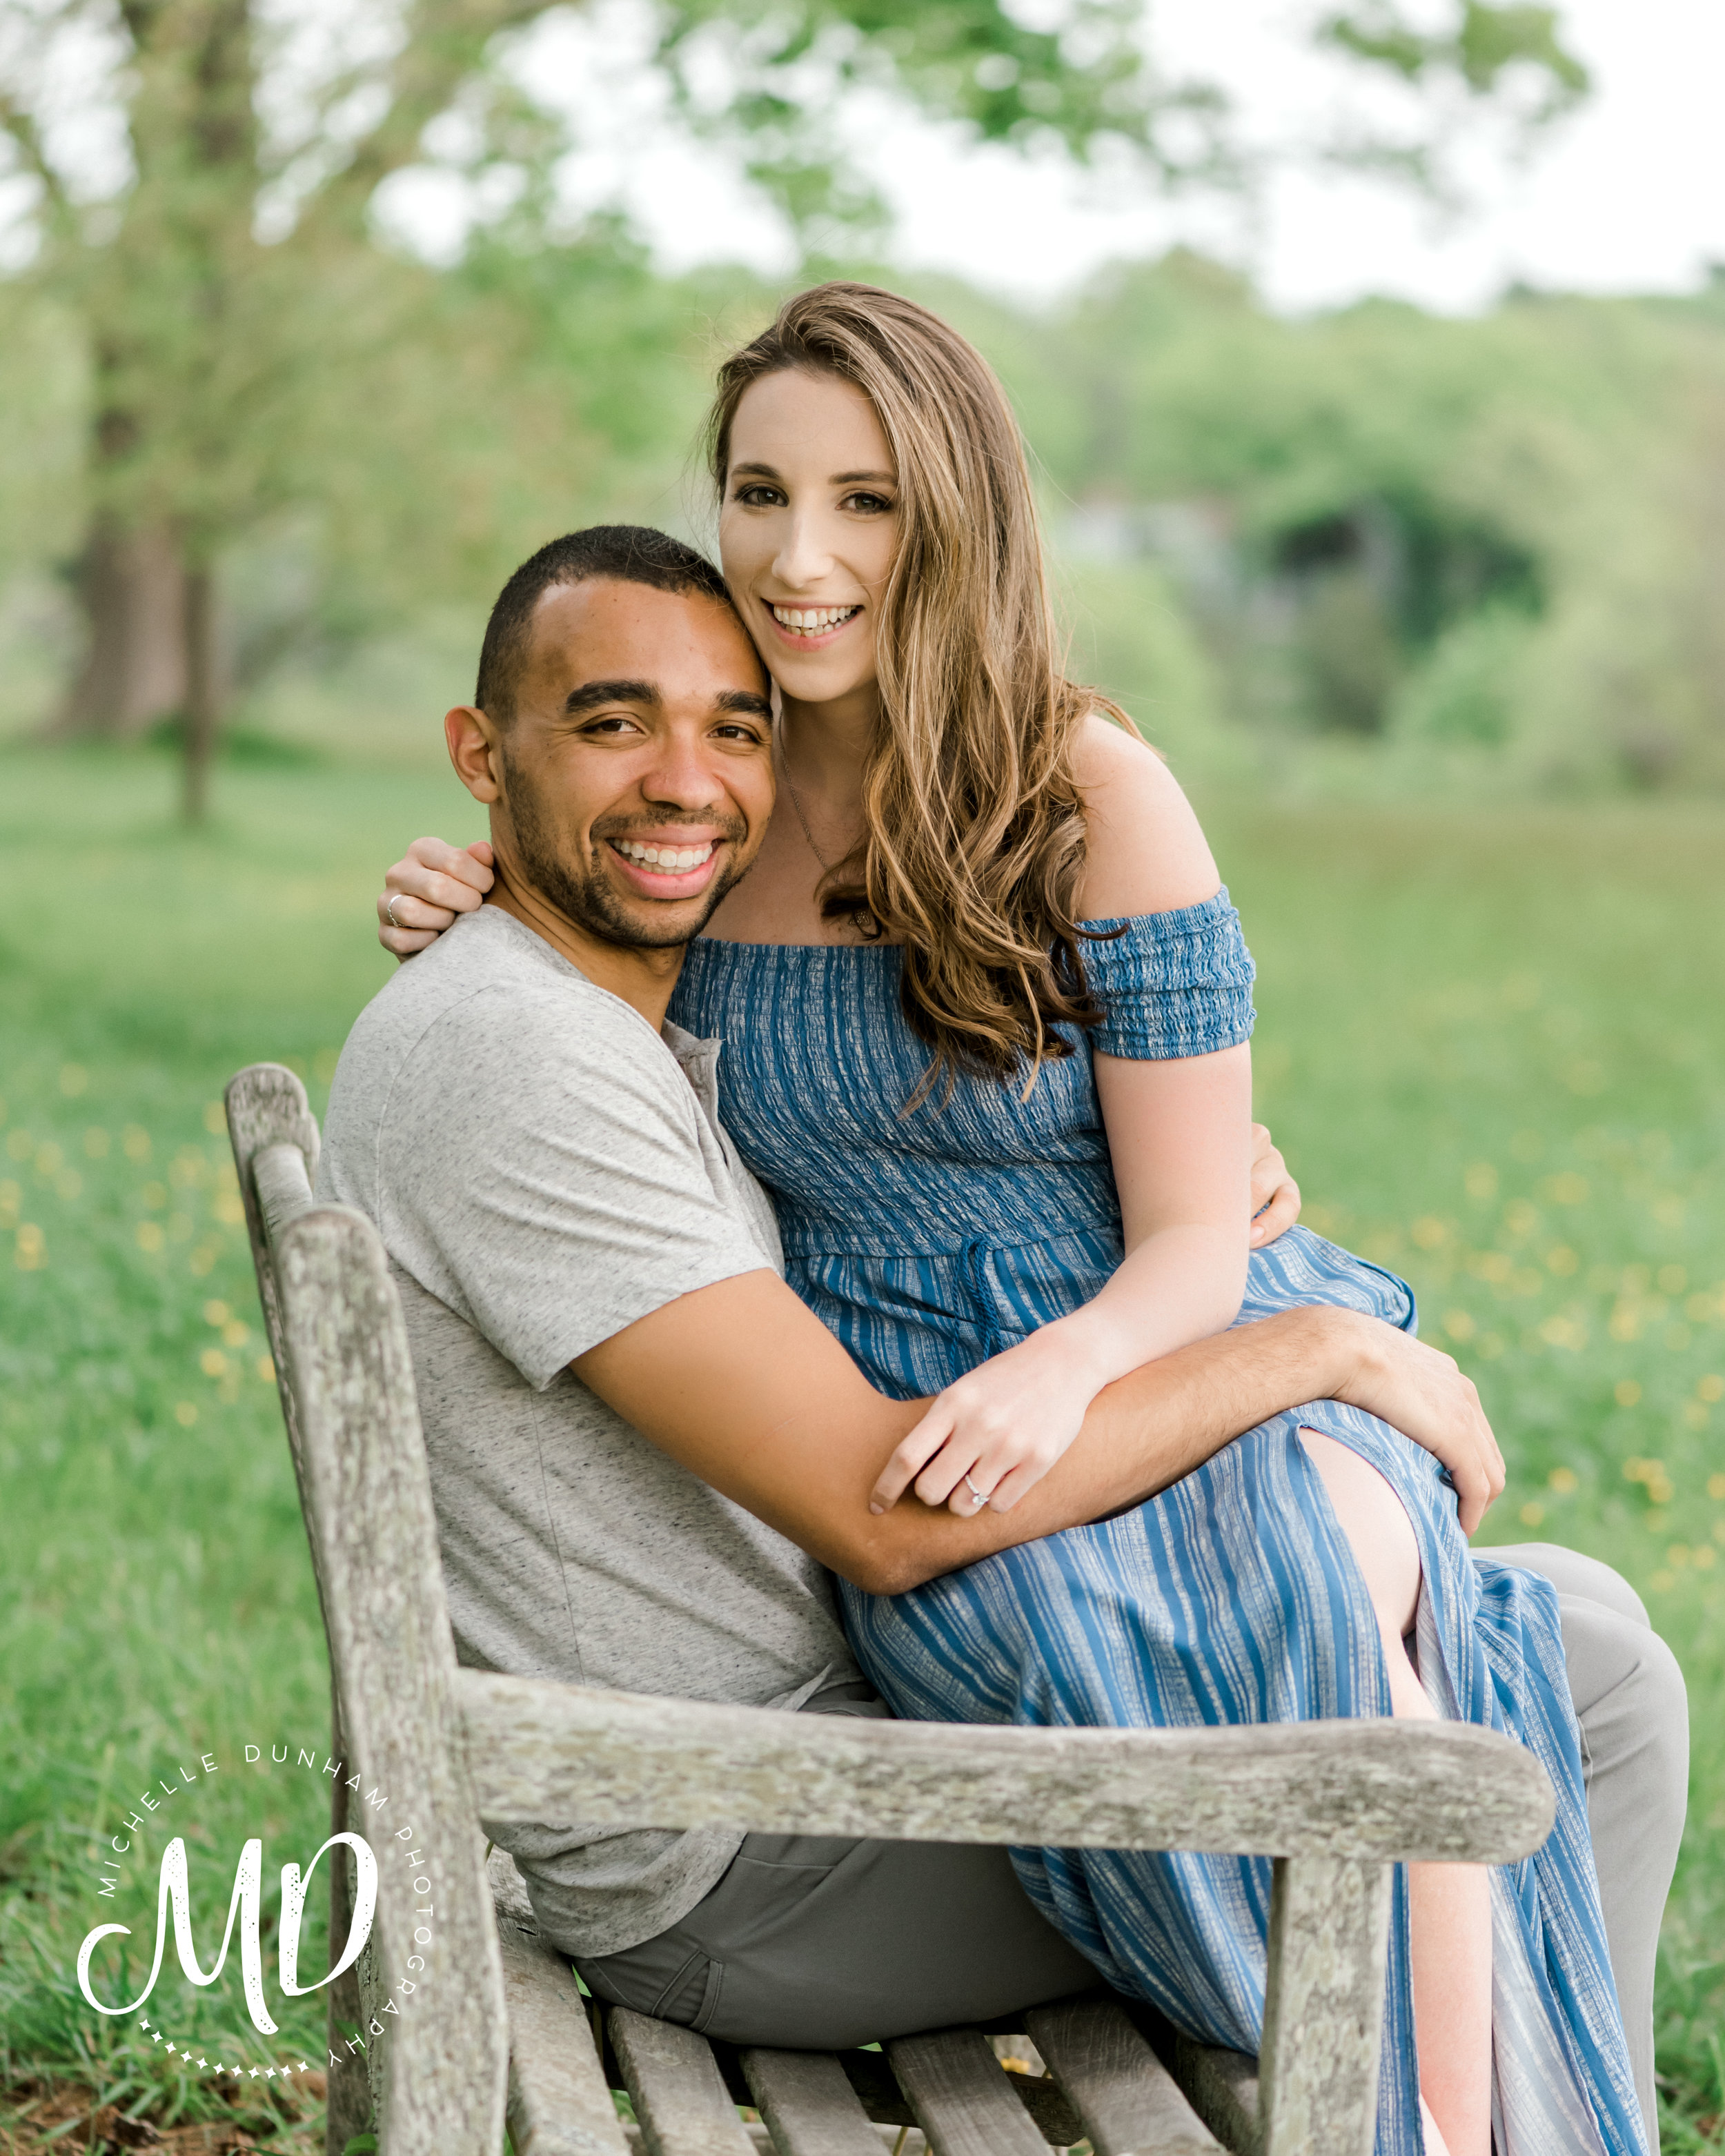 worlds_end_hingham_engagement_boston_cape_cod_wedding_photographer_michelle_dunham_photography-22.jpg